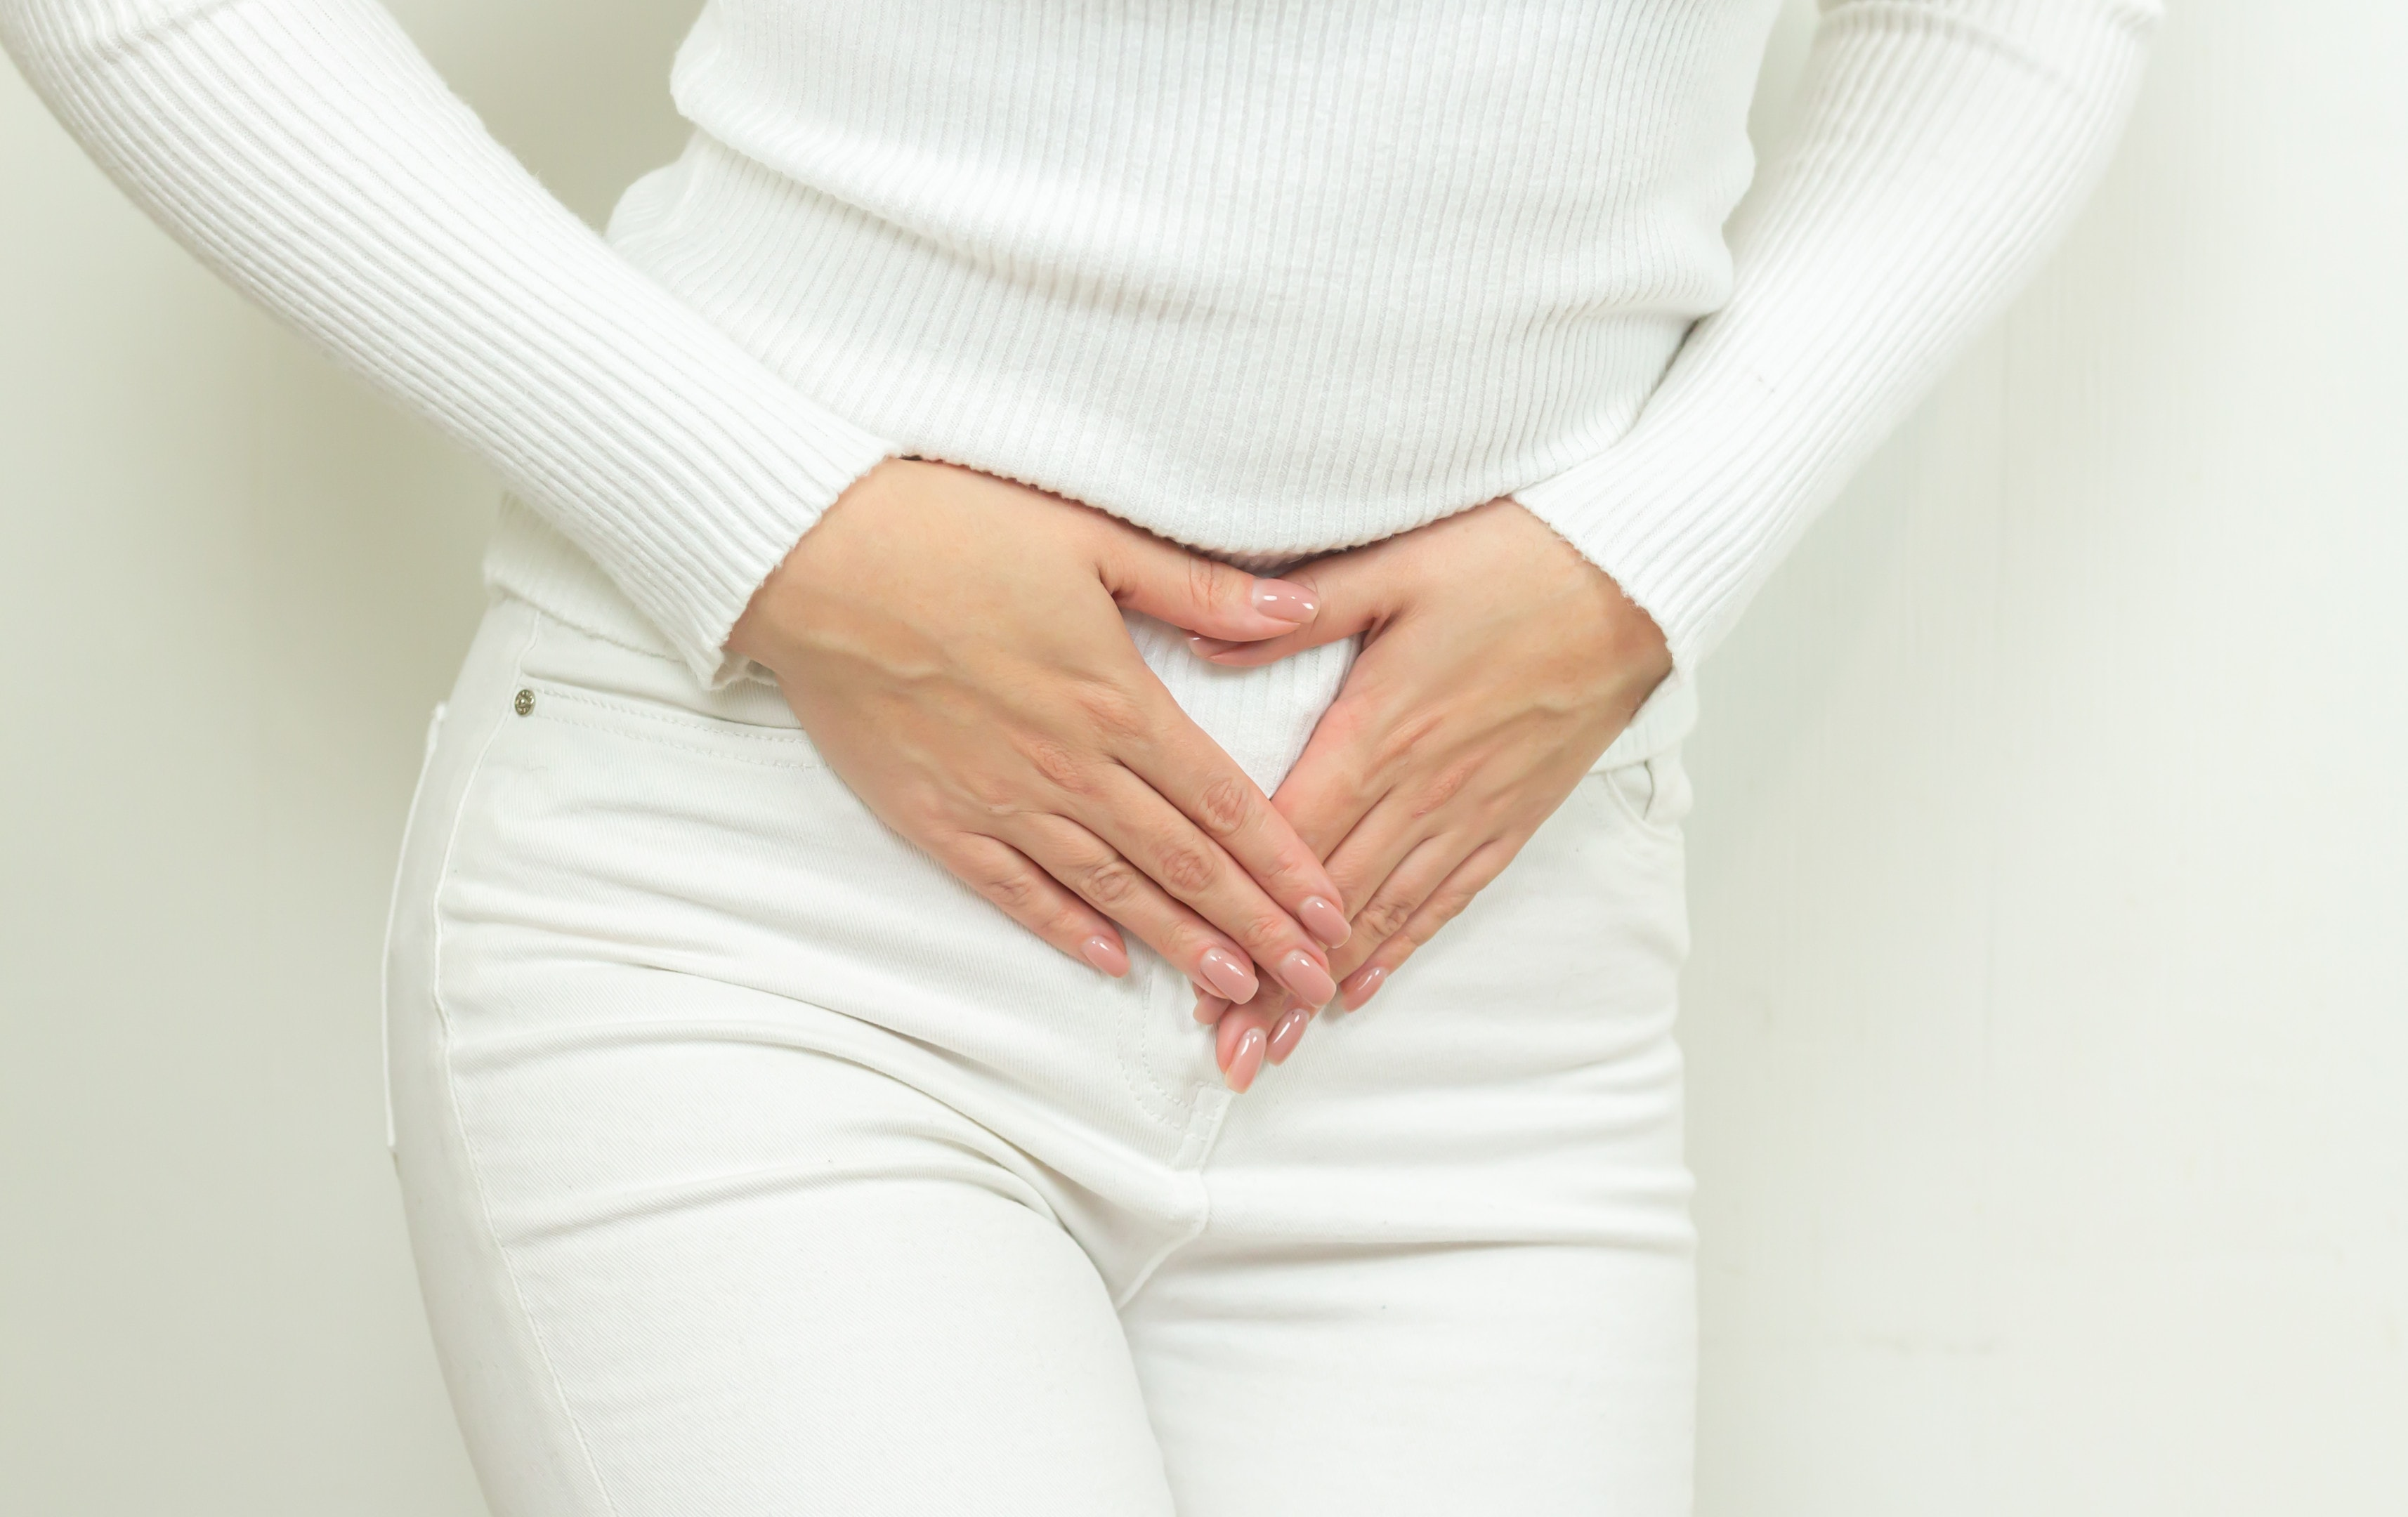 Abdominal pain young woman